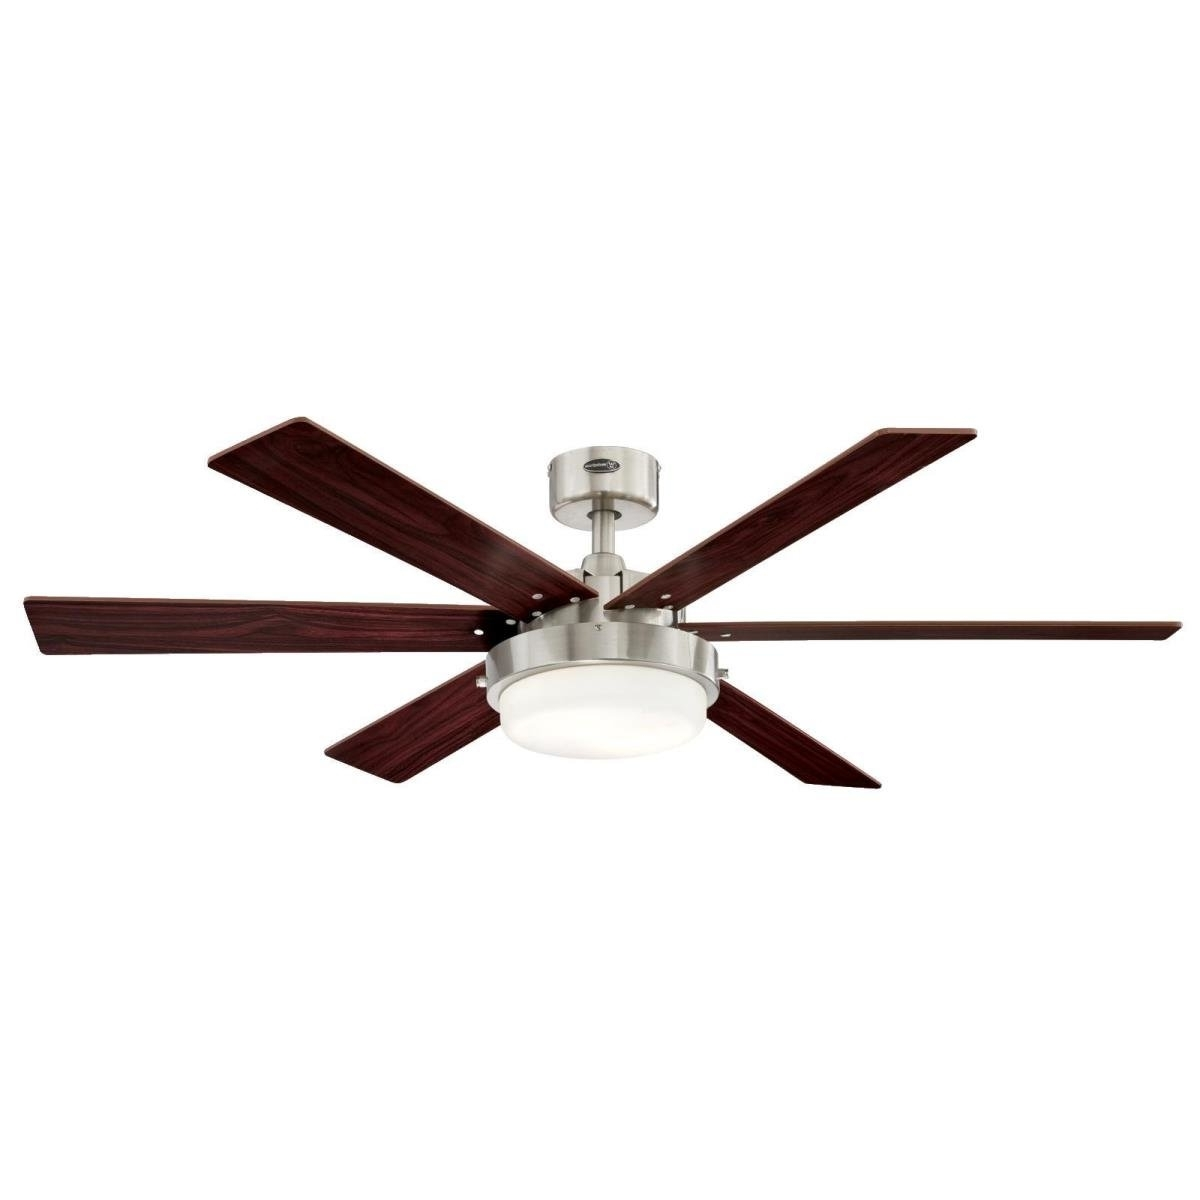 Joss & Main Intended For Most Popular Outdoor Ceiling Fans With Removable Blades (View 10 of 20)